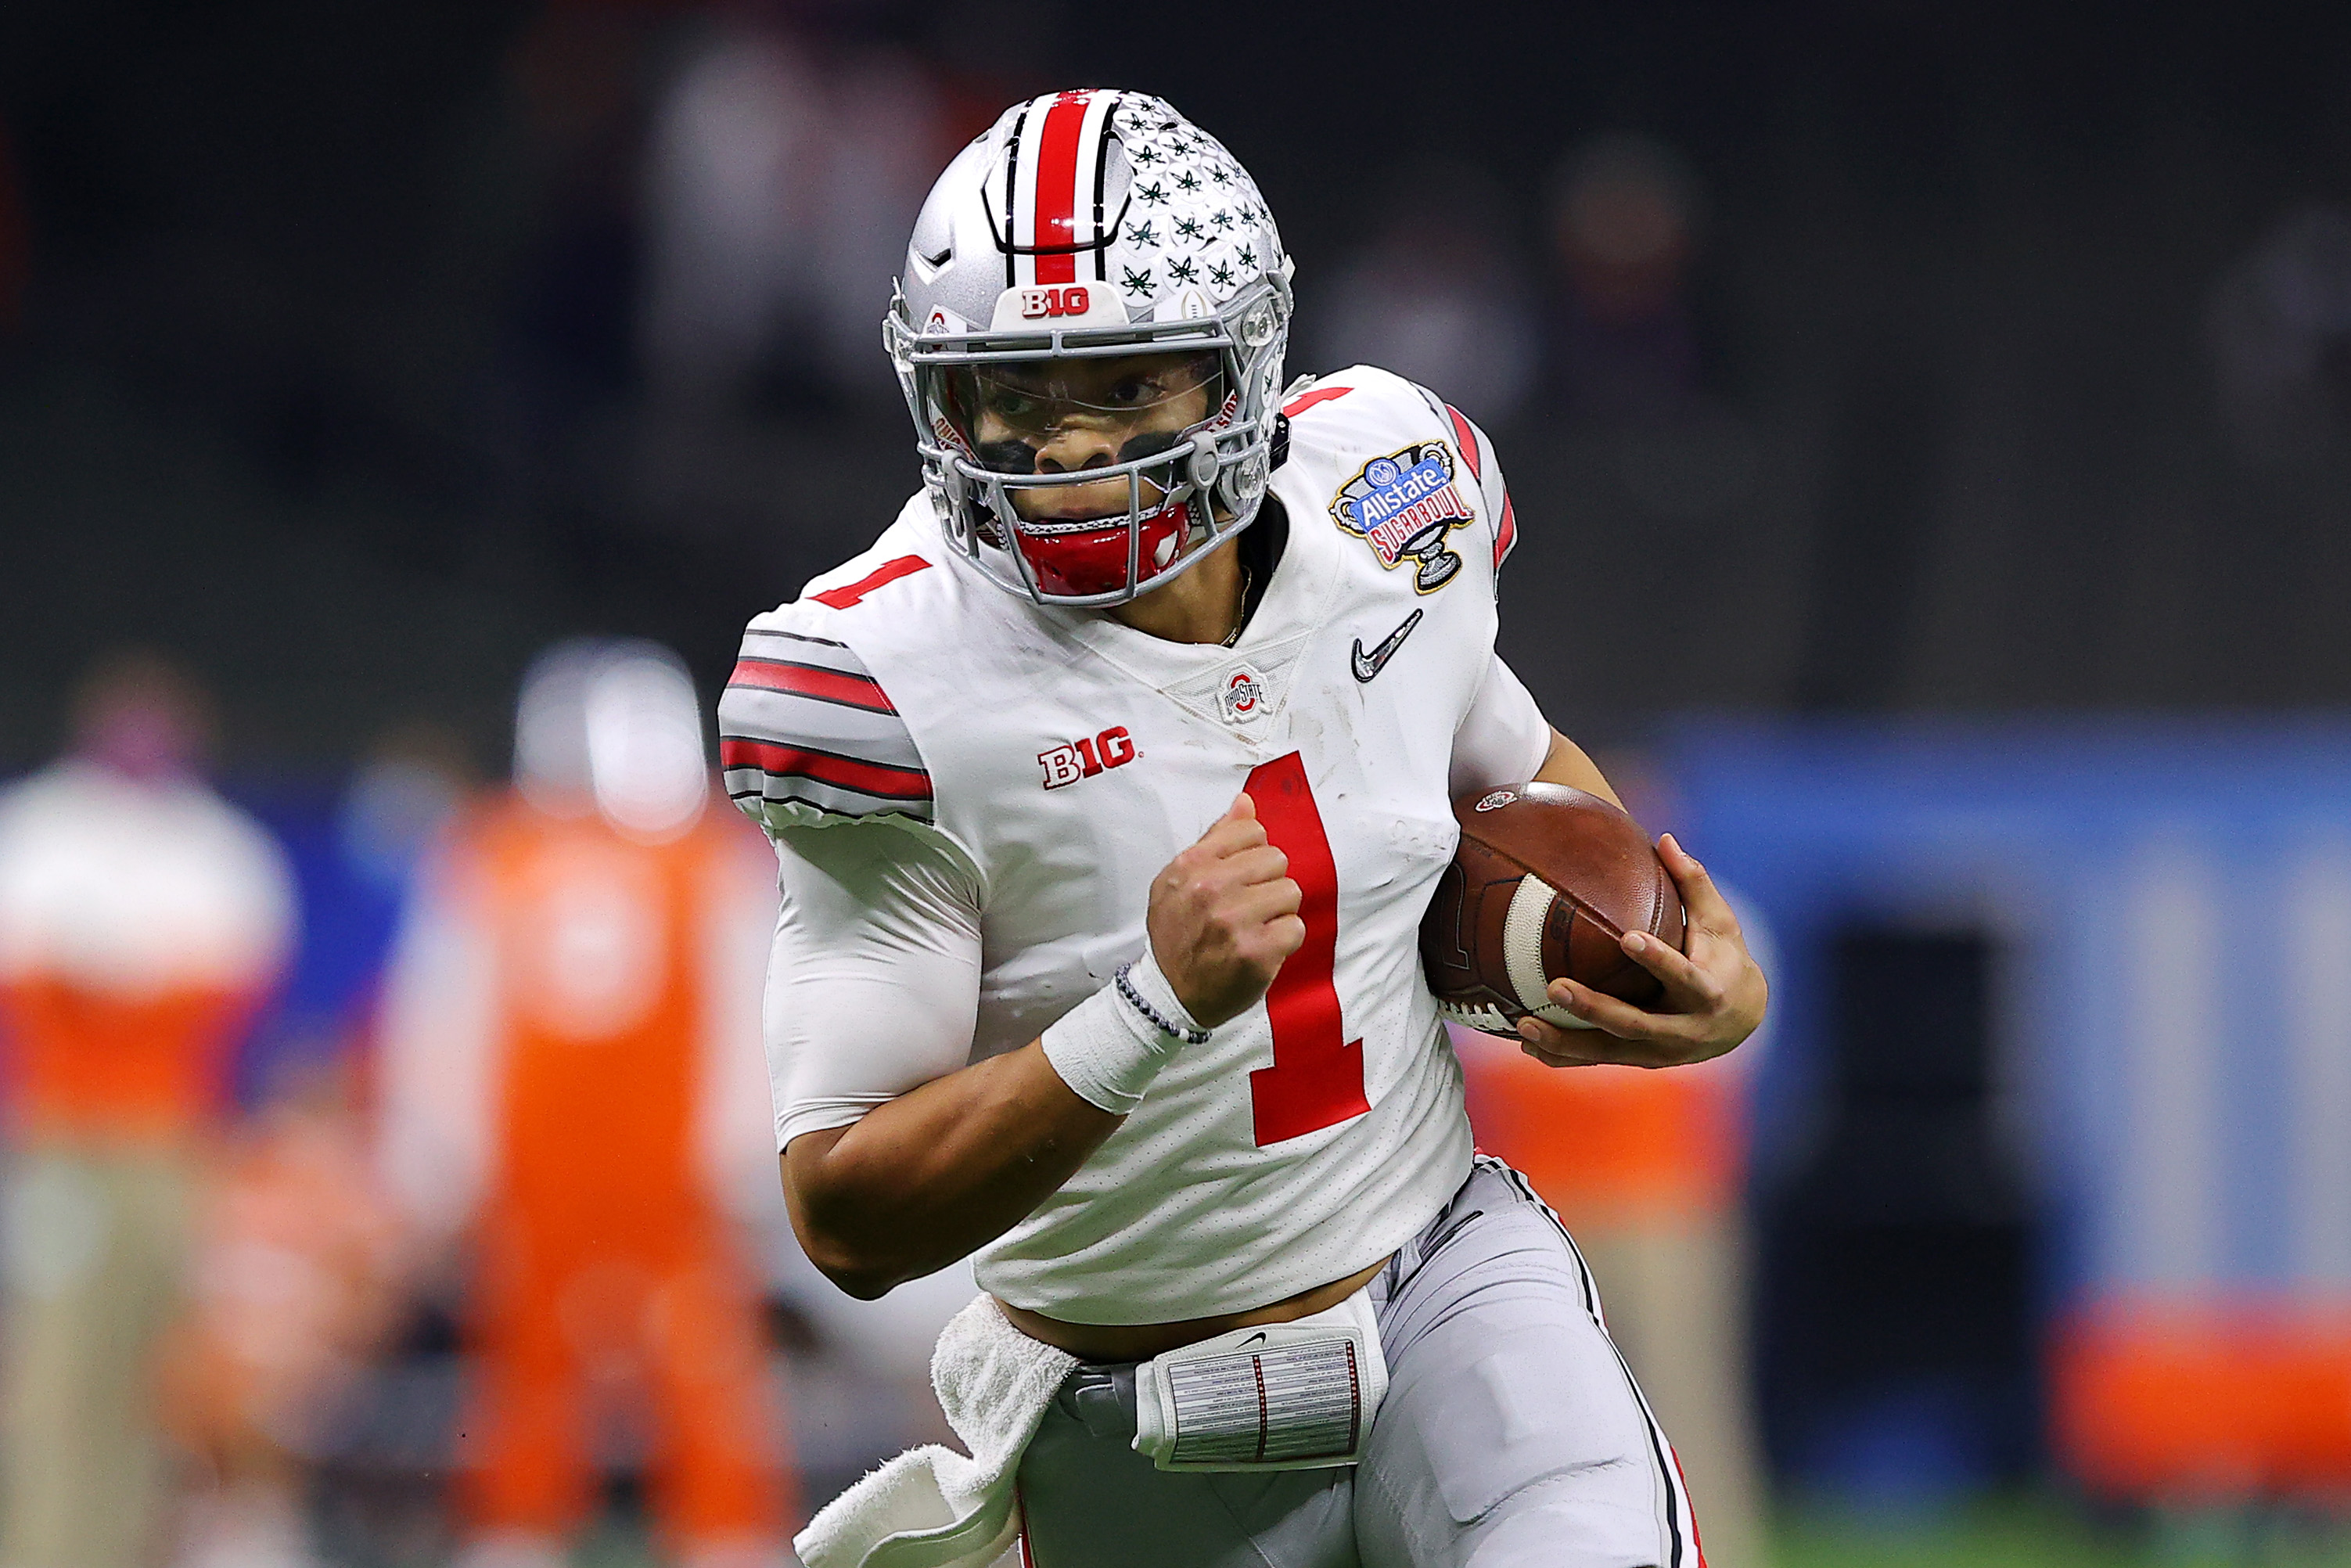 Justin Fields of the Ohio State Buckeyes runs with the ball in the first half against the Clemson Tigers during the College Football Playoff semifinal game at the Allstate Sugar Bowl at Mercedes-Benz Superdome on January 01, 2021 in New Orleans, Louisiana.